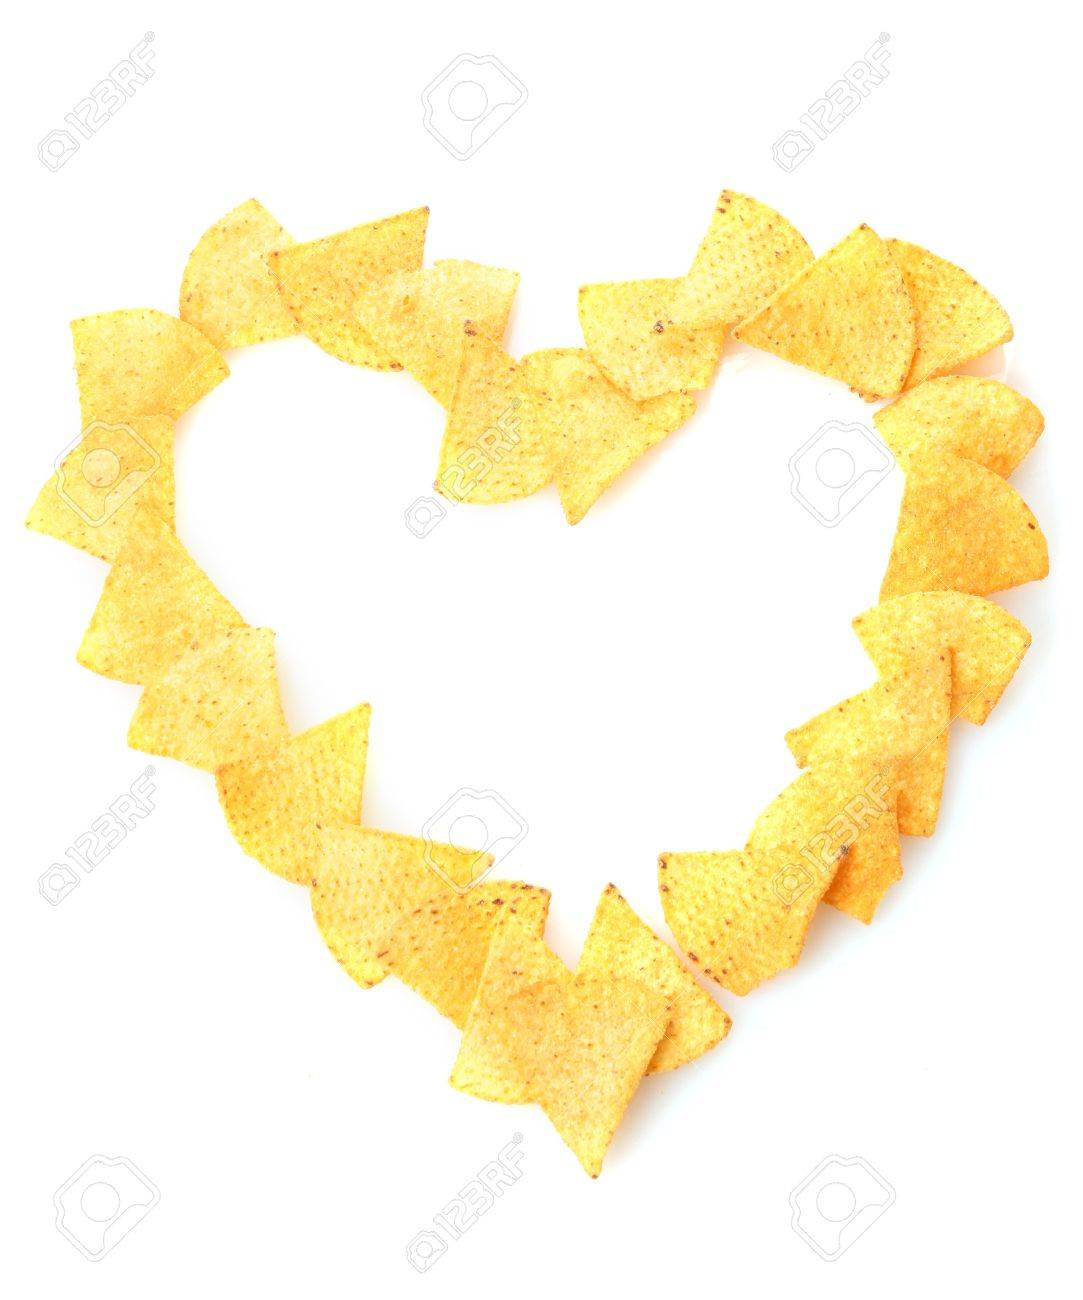 Delicious Potato Chips Heart Shape Isolated On White Stock Photo